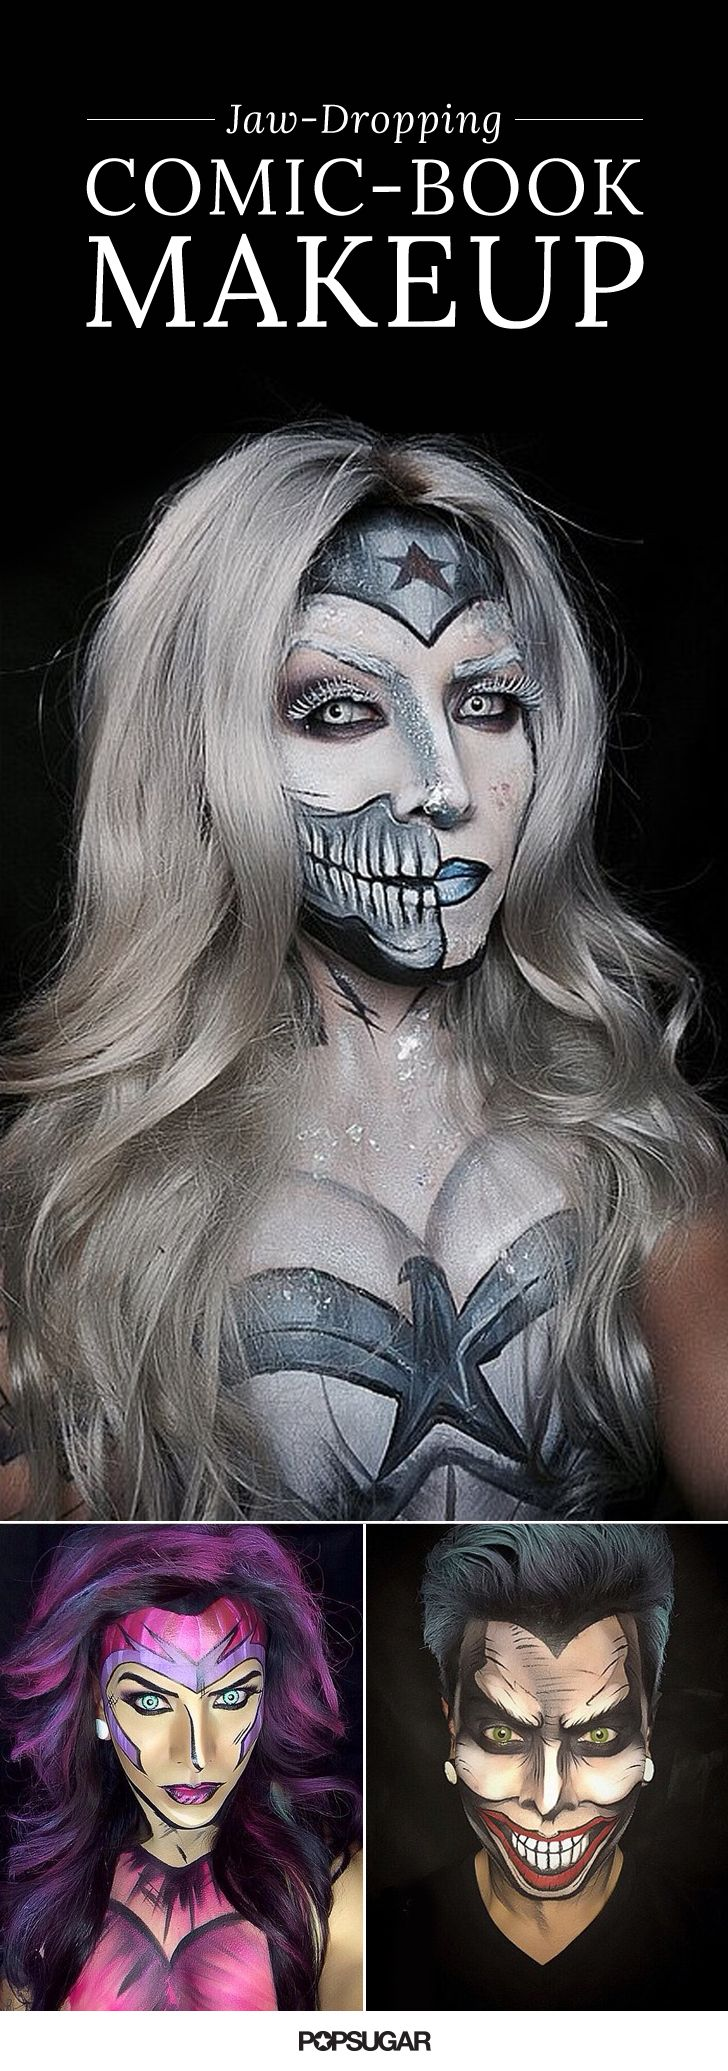 These jaw-dropping comic-book makeup looks are perfect for Halloween!